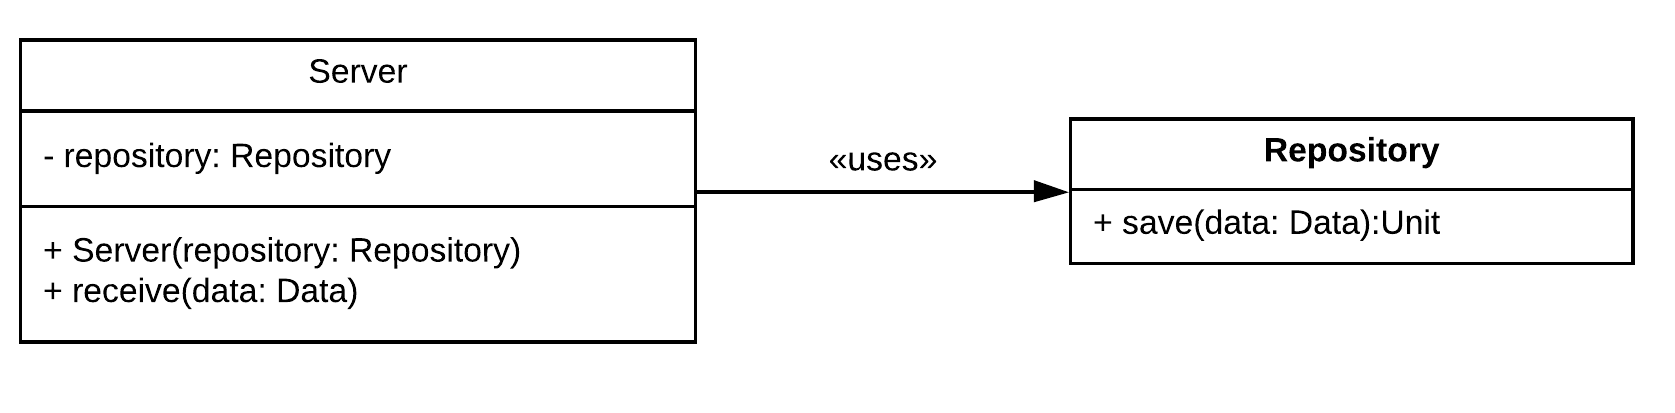 Figure 1.10 - The Server uses a Repository